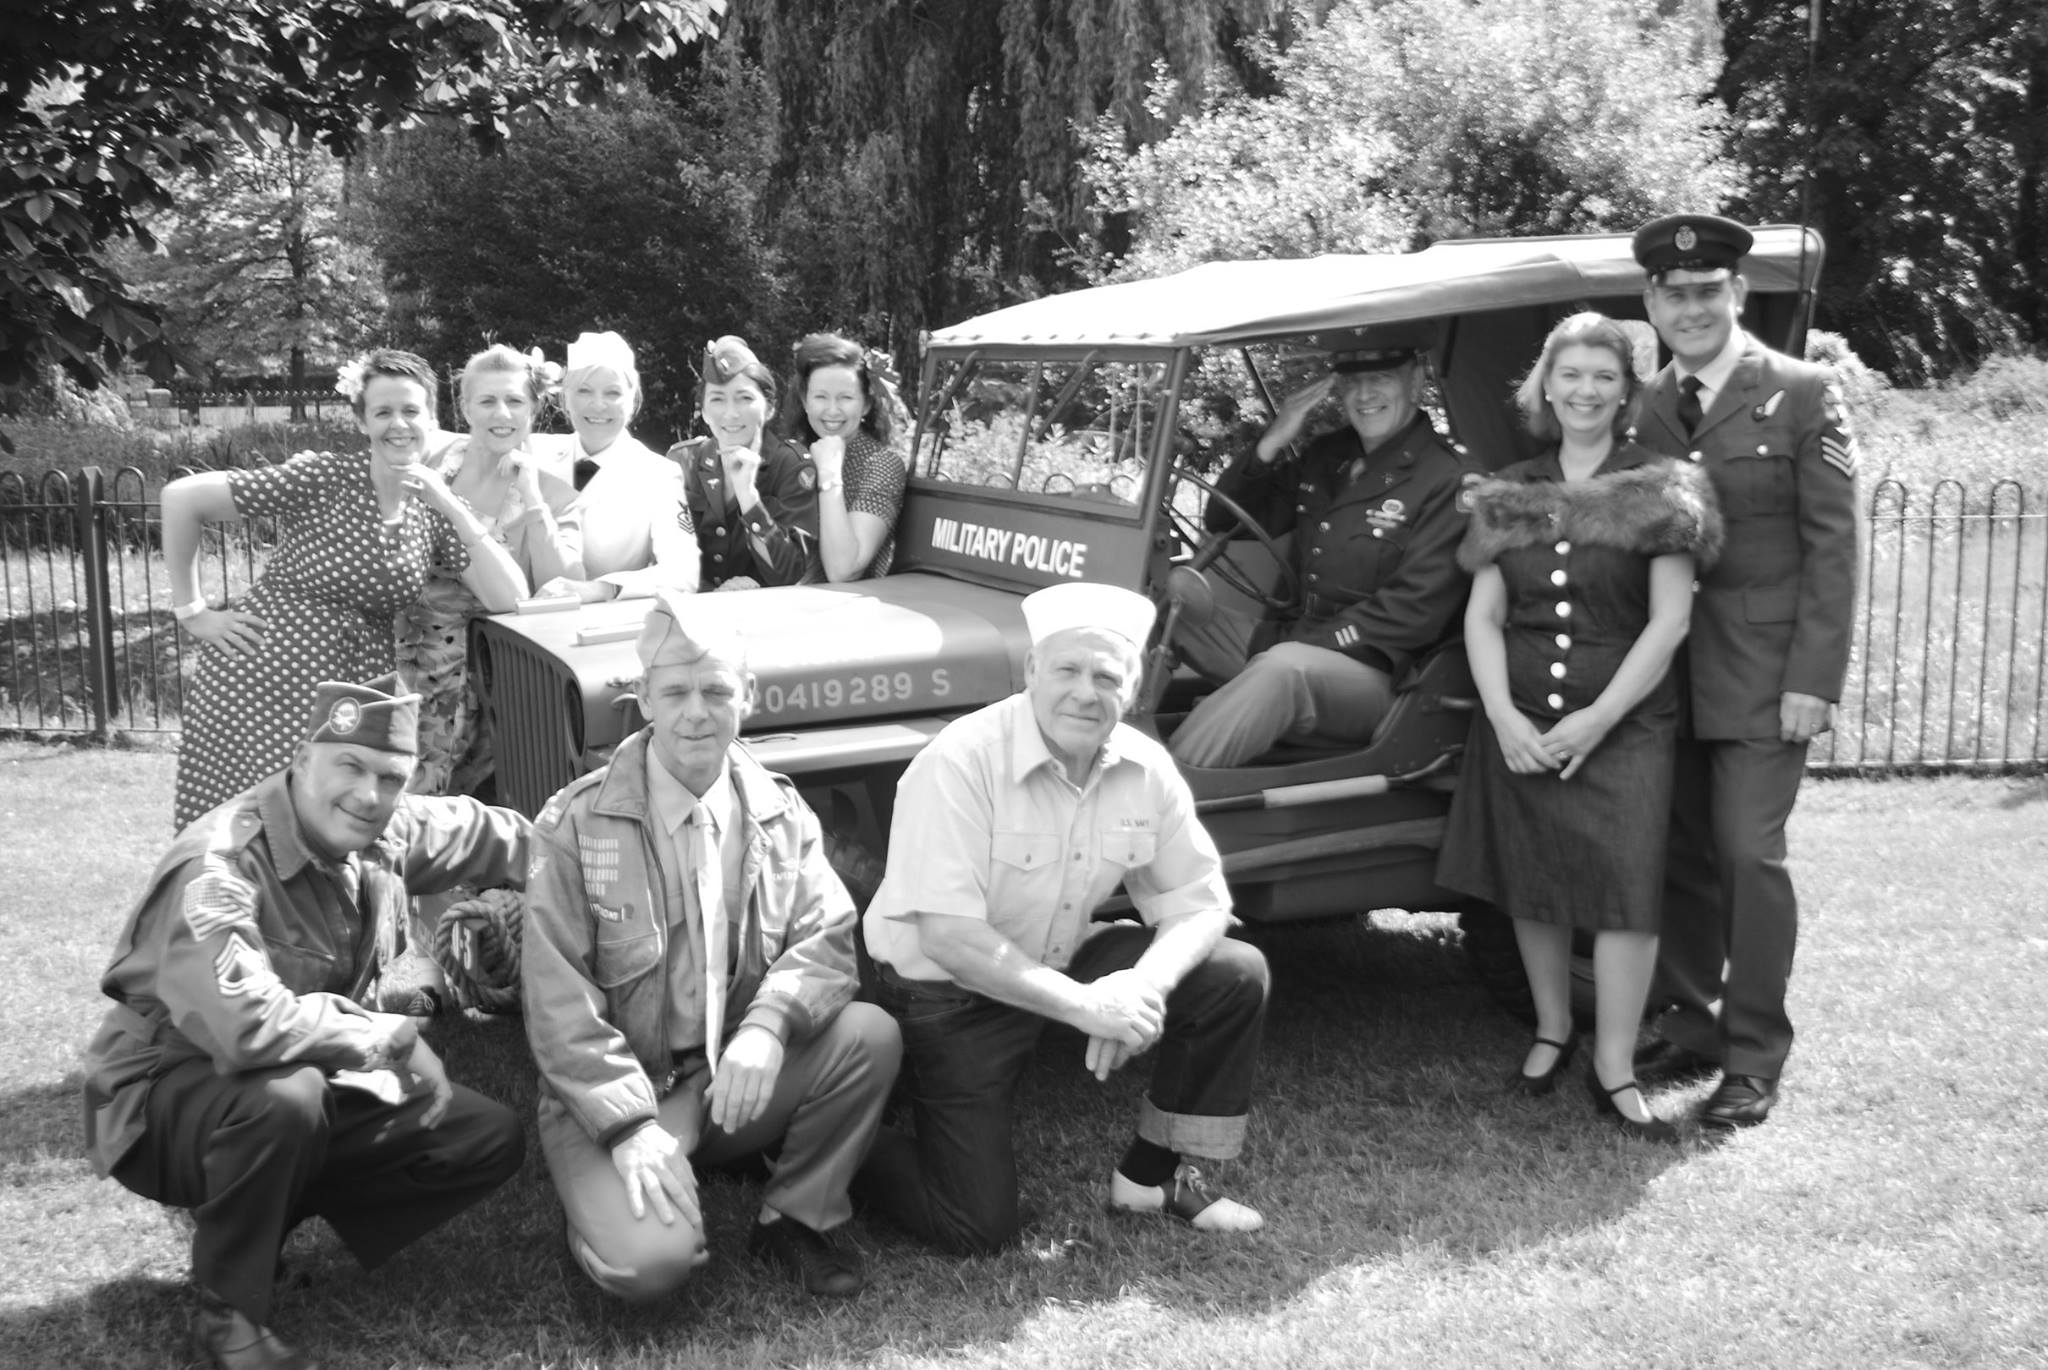 black and white photo of vintage dance group around an old car